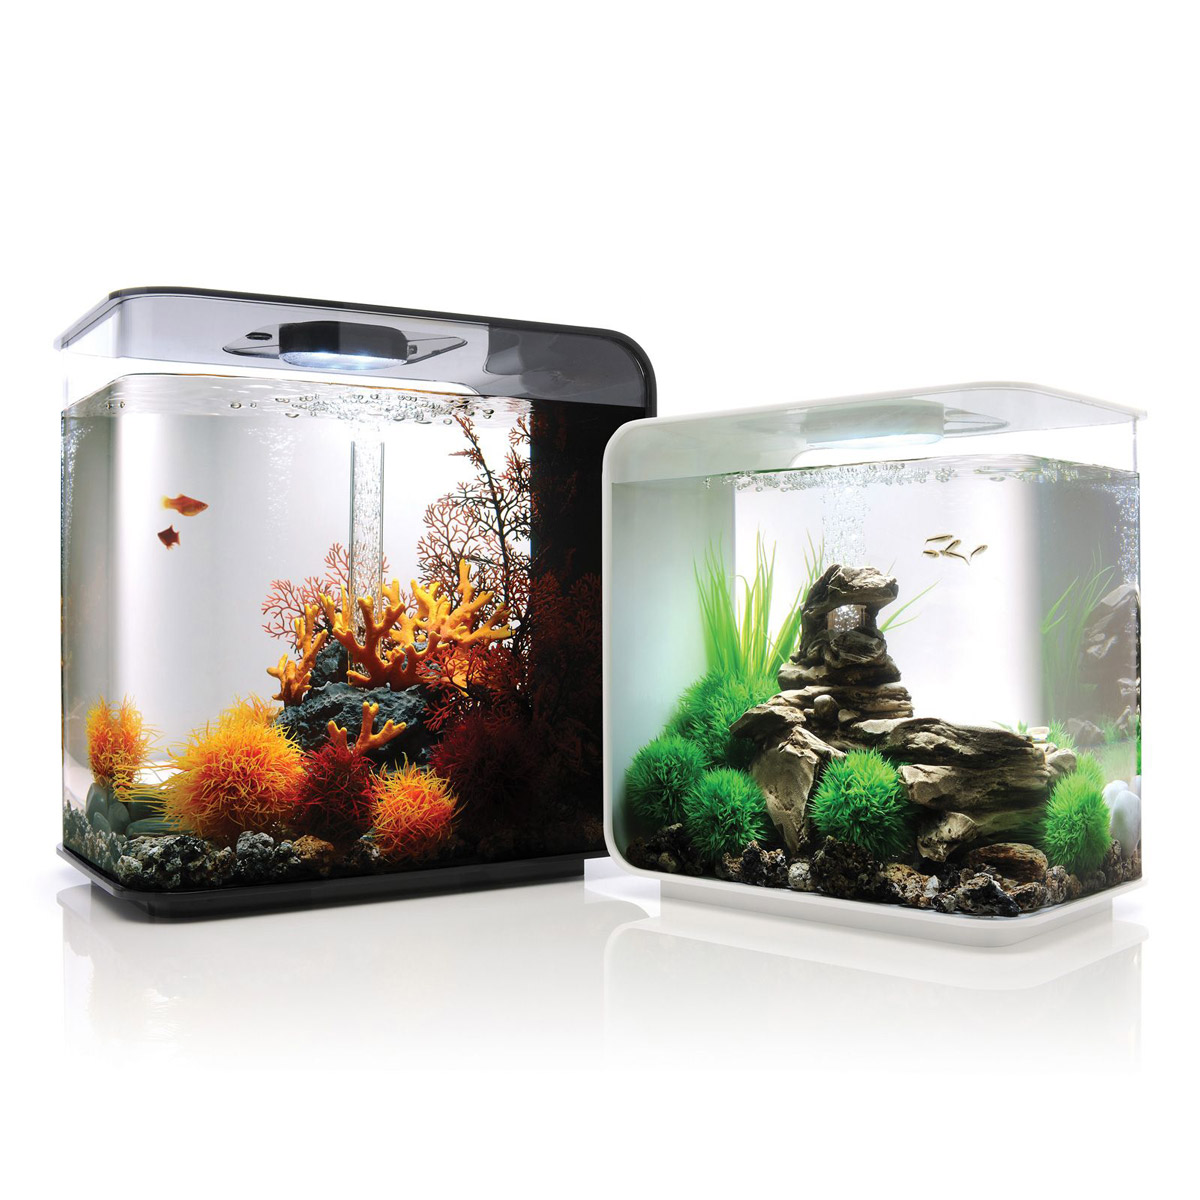 Biorb flow aquarium the green head for Cool small fish tanks